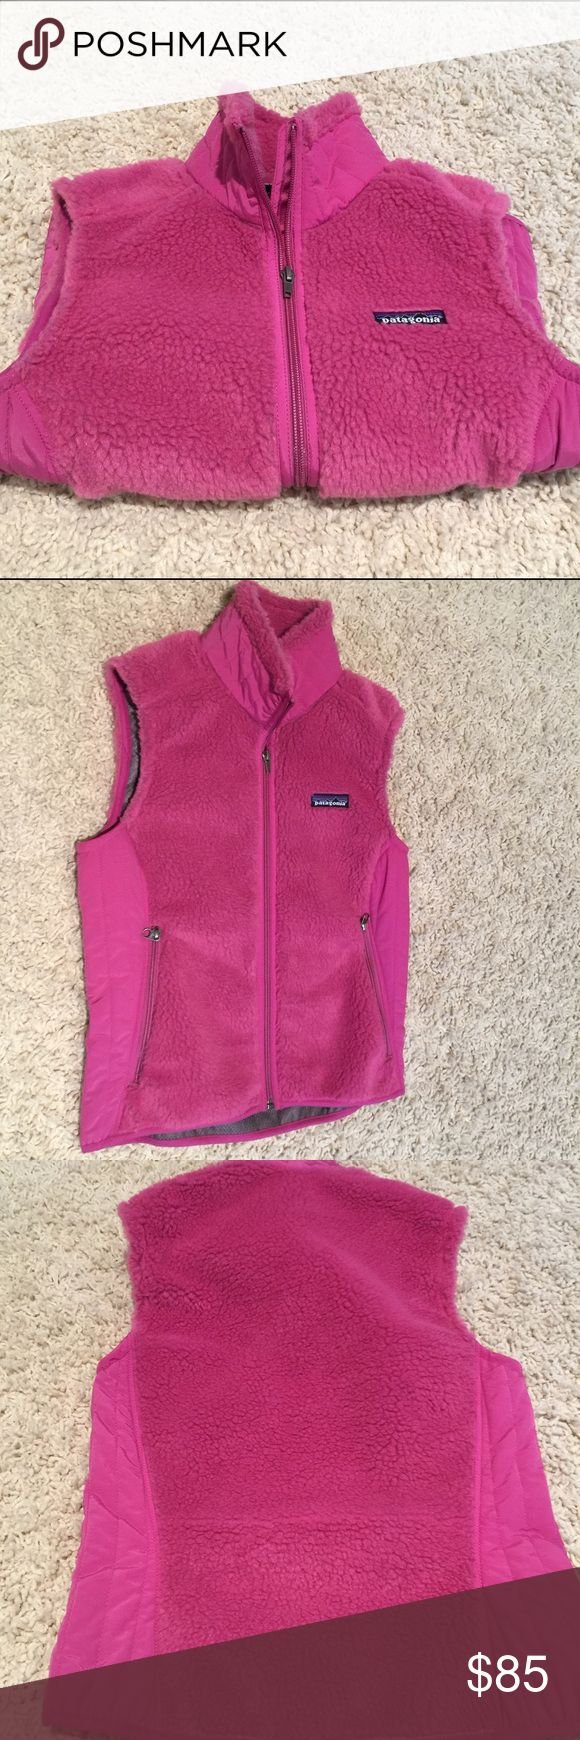 "Patagonia Pink Vest...Brand New...Small Never worn!! Measures 17"" across the chest. Has a fuzzy pile on the front and back and the inside has an extra layer for warmth!! Patagonia Jackets & Coats Vests"